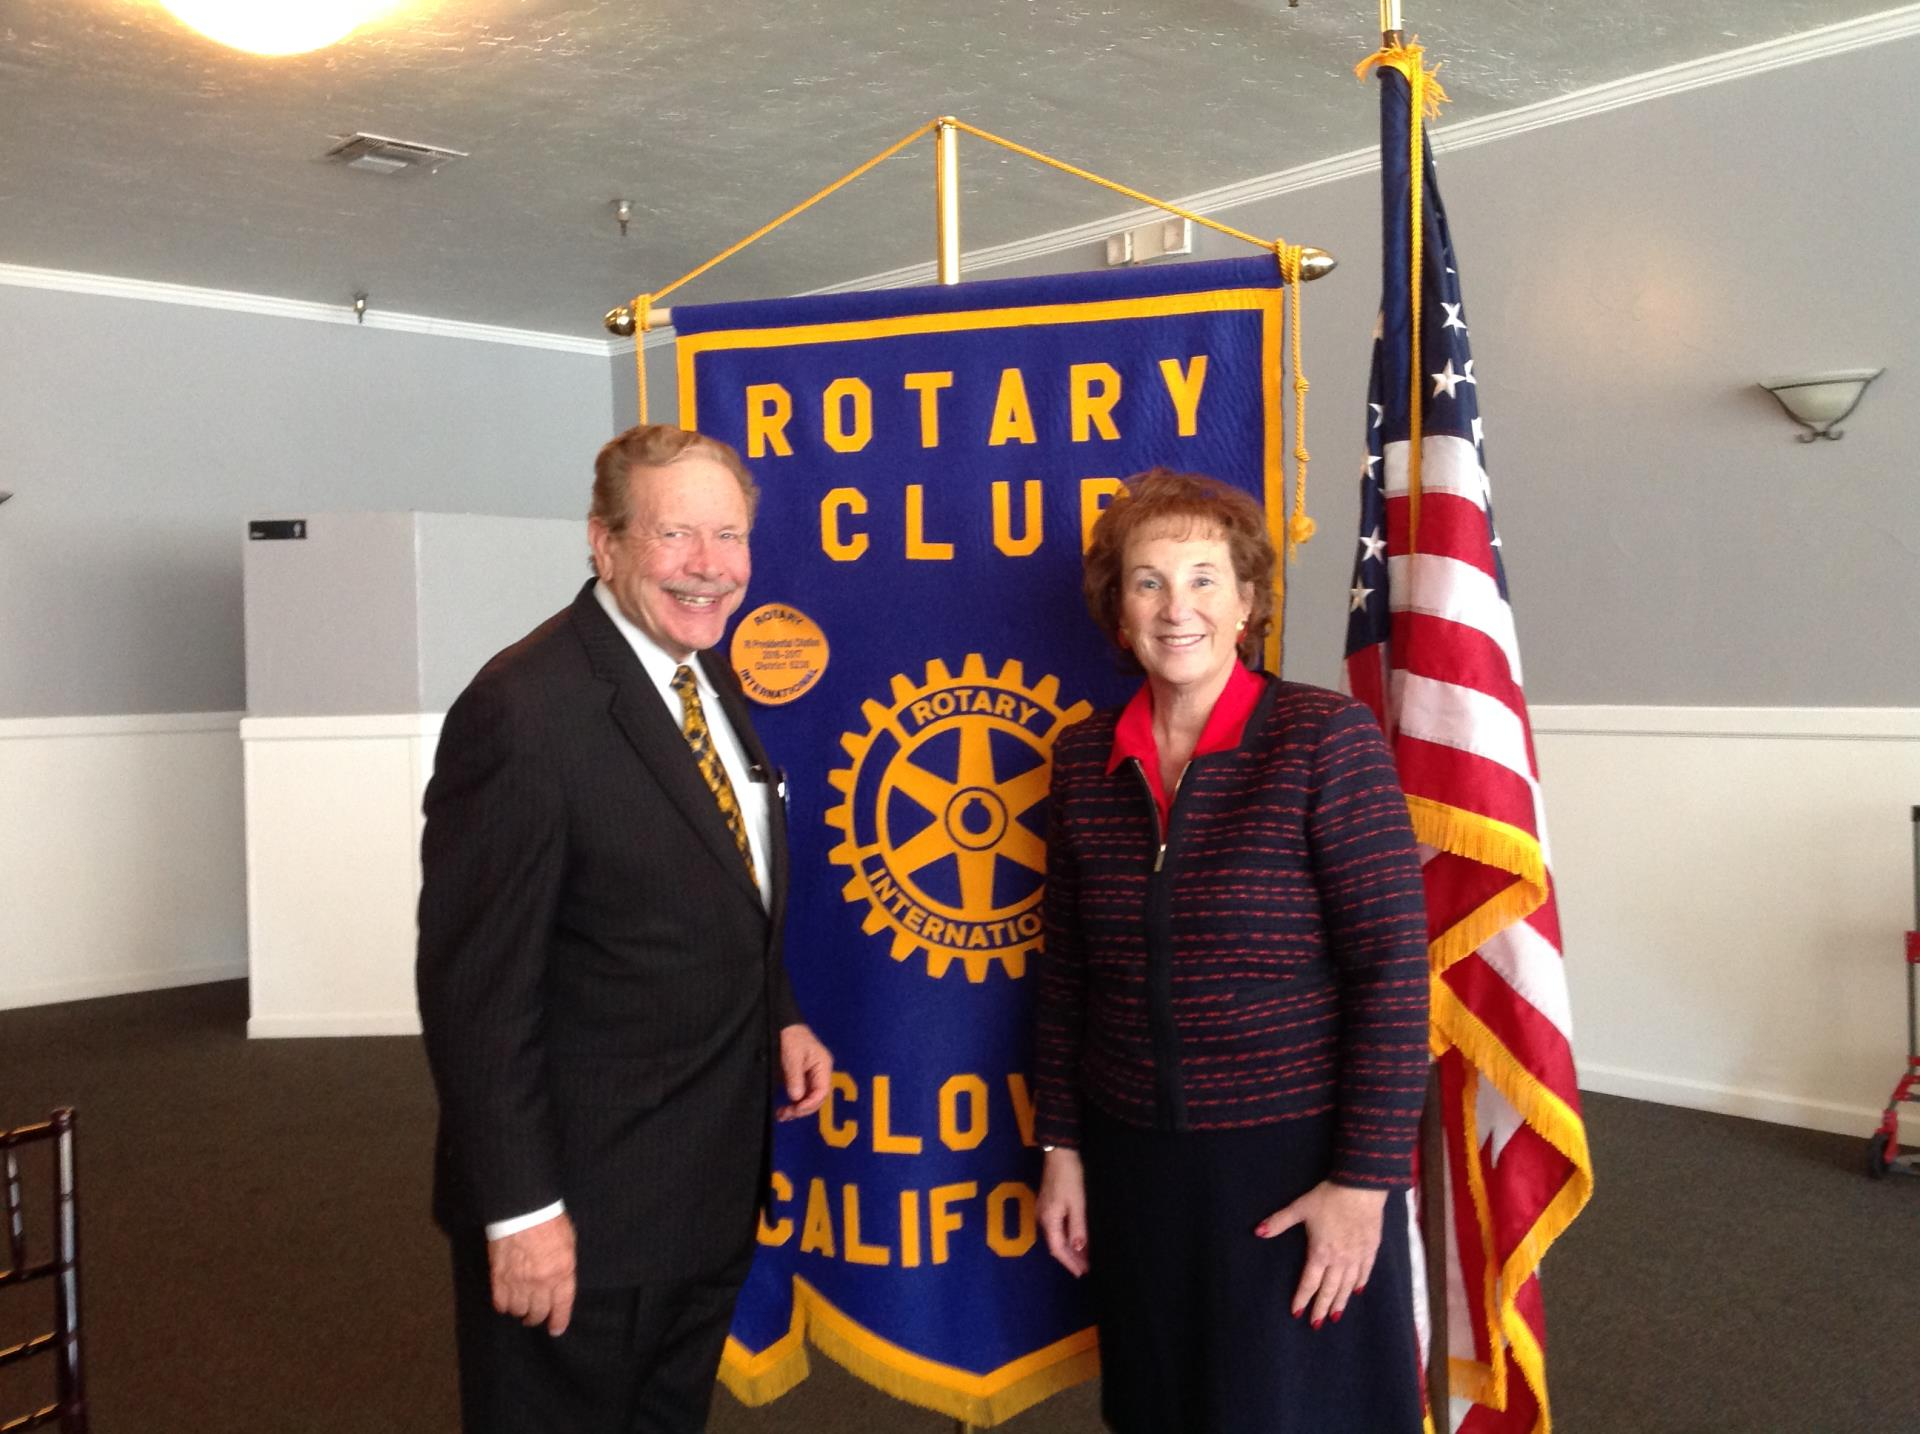 Clovis Rotary Picture 1